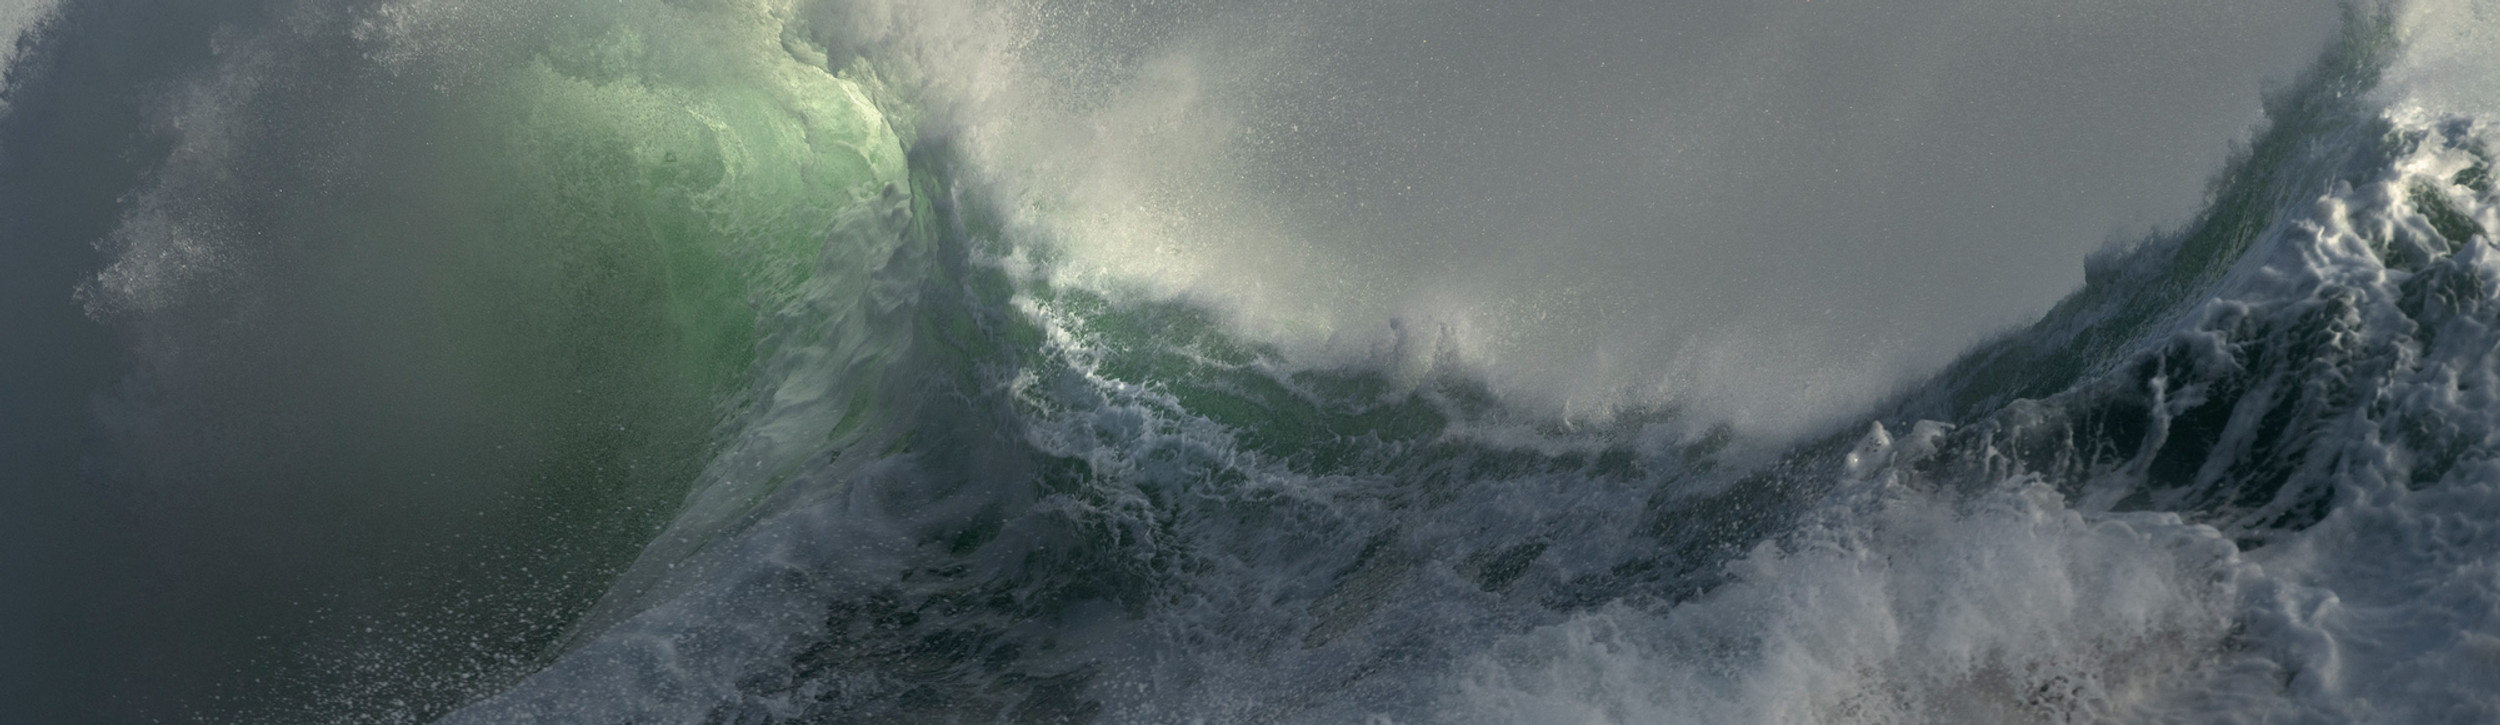 Storm and wave photography in Cornwall UK.